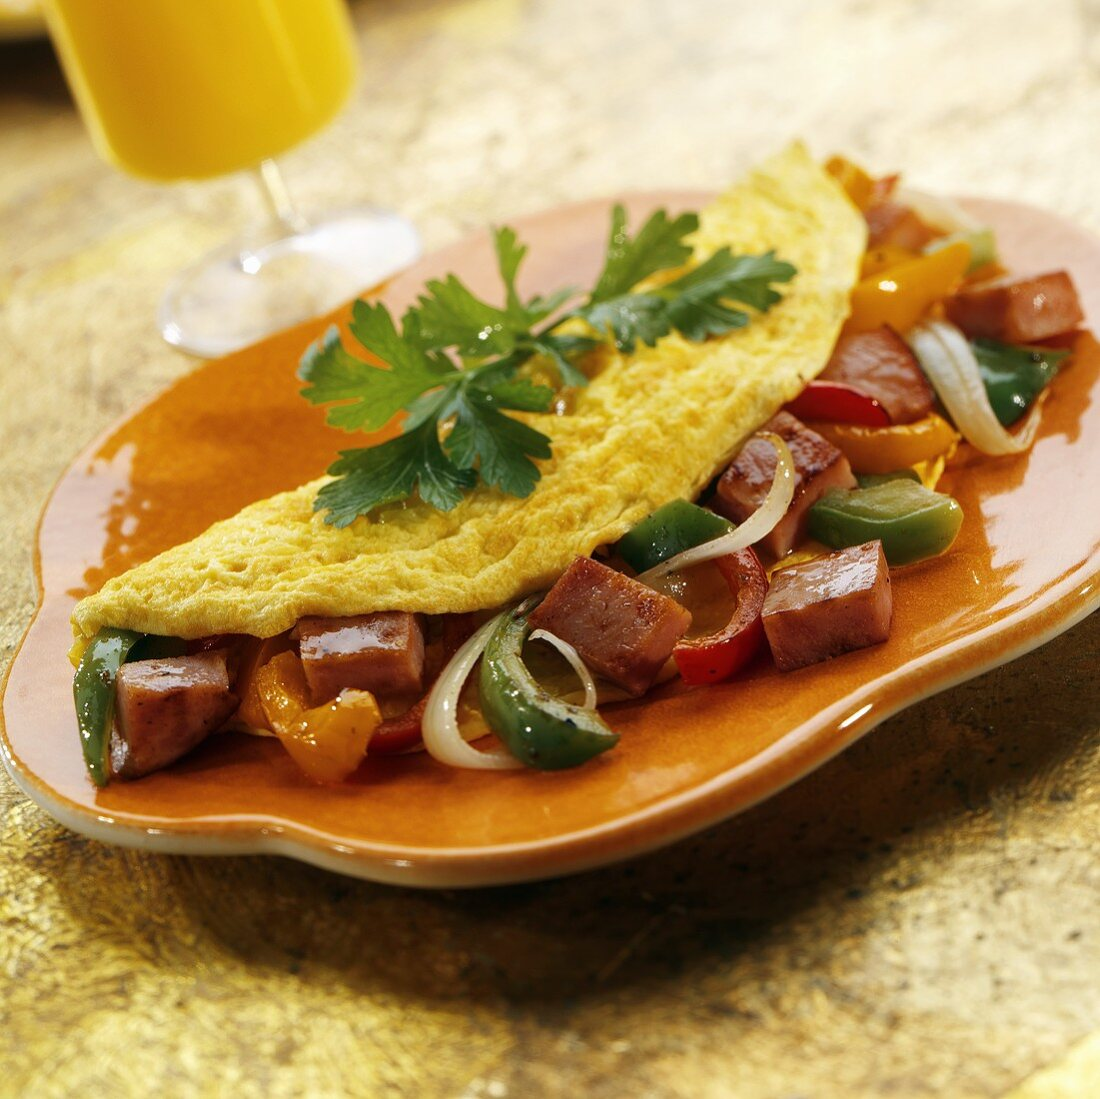 An Omelet with Ham, Bell Peppers and Onion